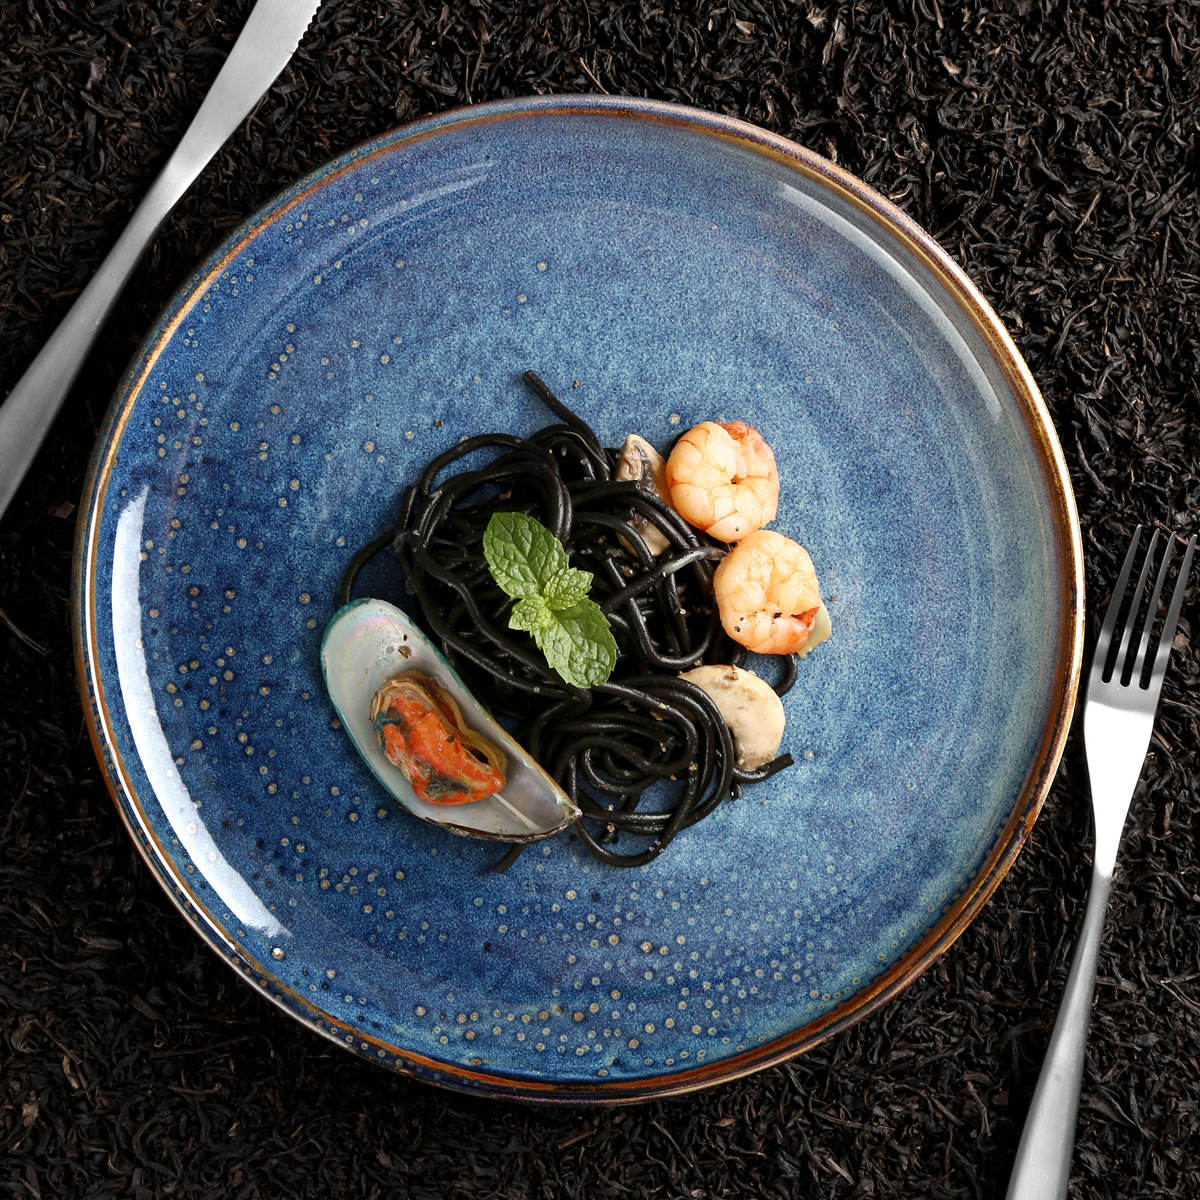 Factory direct wholesale hotel blue nordic dish ceramic dinner plate set,restaurant ecofriendly porcelain dishes plates